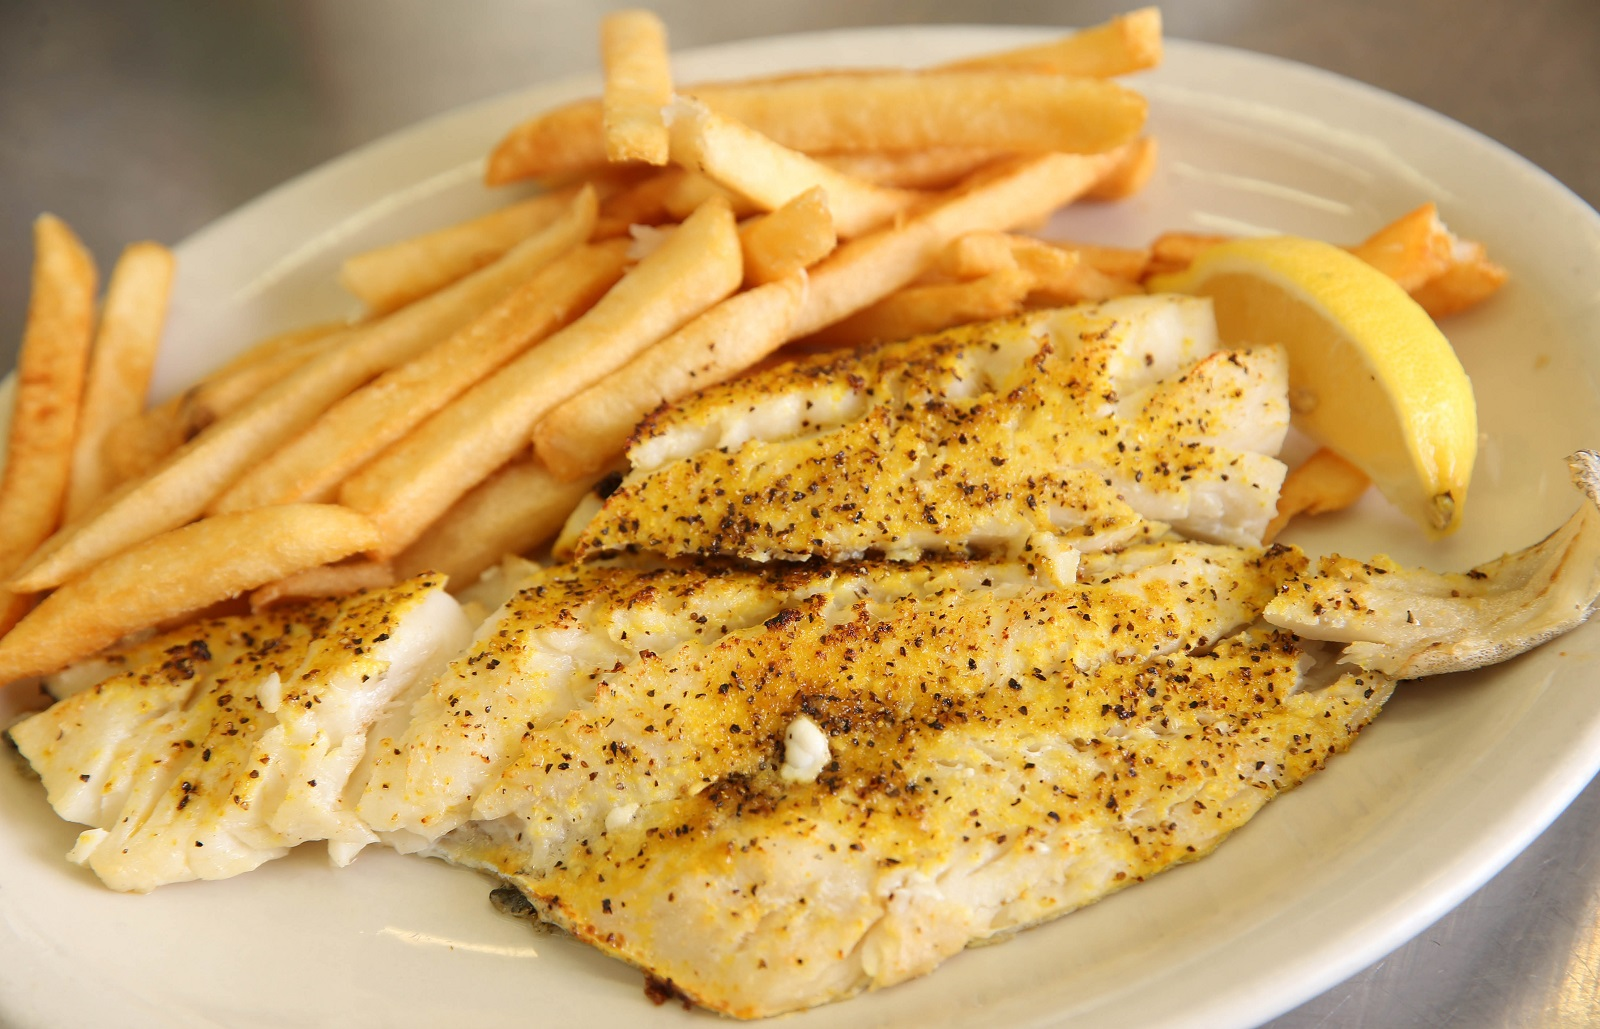 This is the lemon pepper broiled fish dinner. Potato and macaroni salads are available at the salad bar. (Sharon Cantillon/Buffalo News)